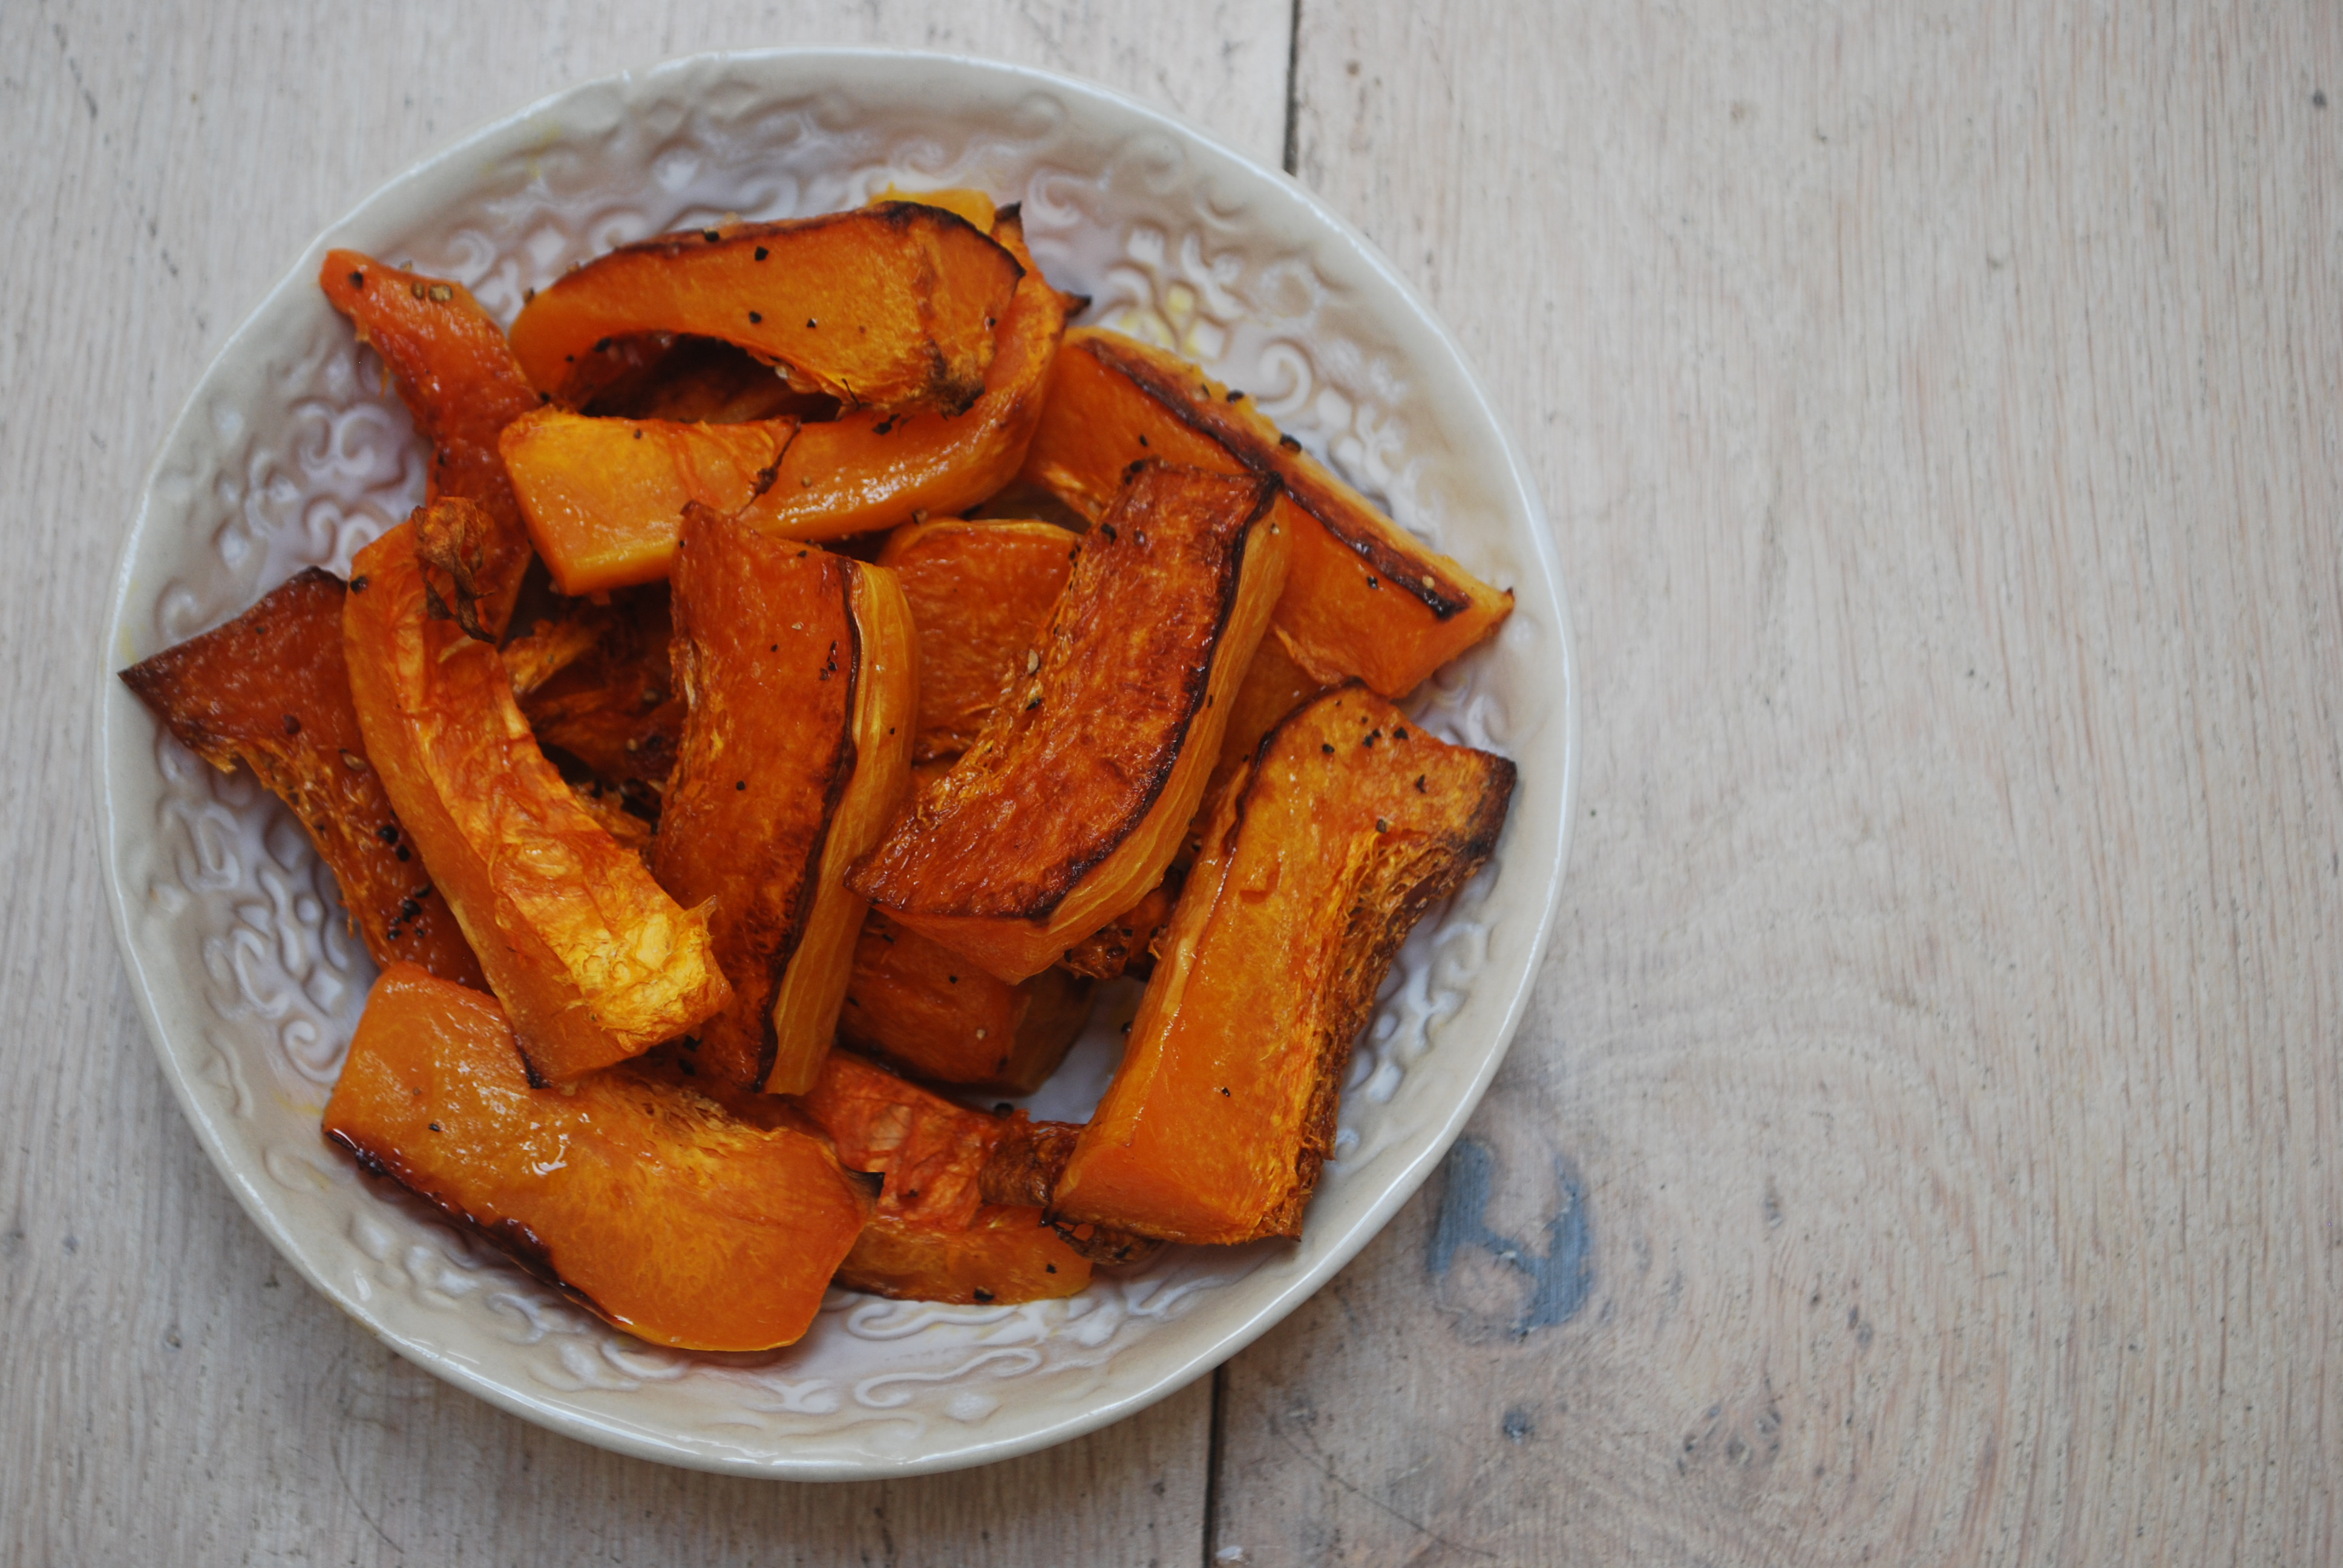 Butternut Squash Wedges Cooking Them Healthy